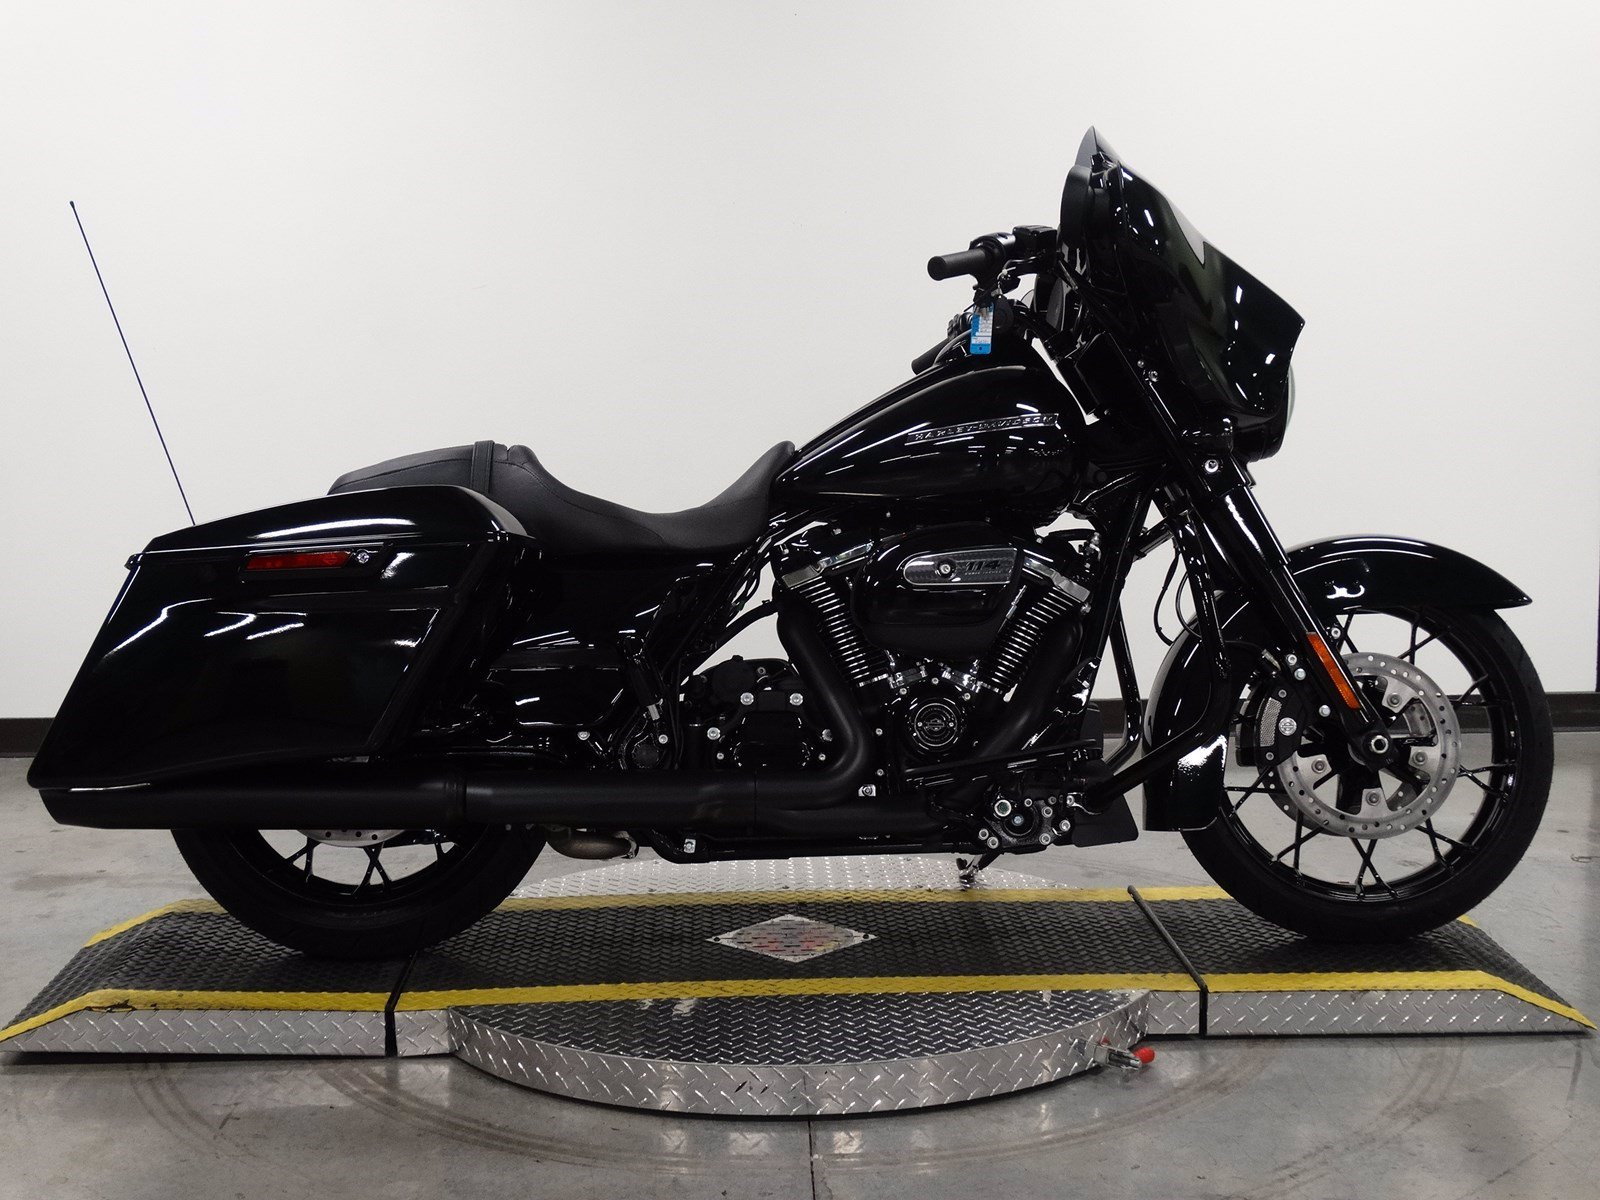 New 2020 Harley-Davidson Street Glide Special FLHXS ...